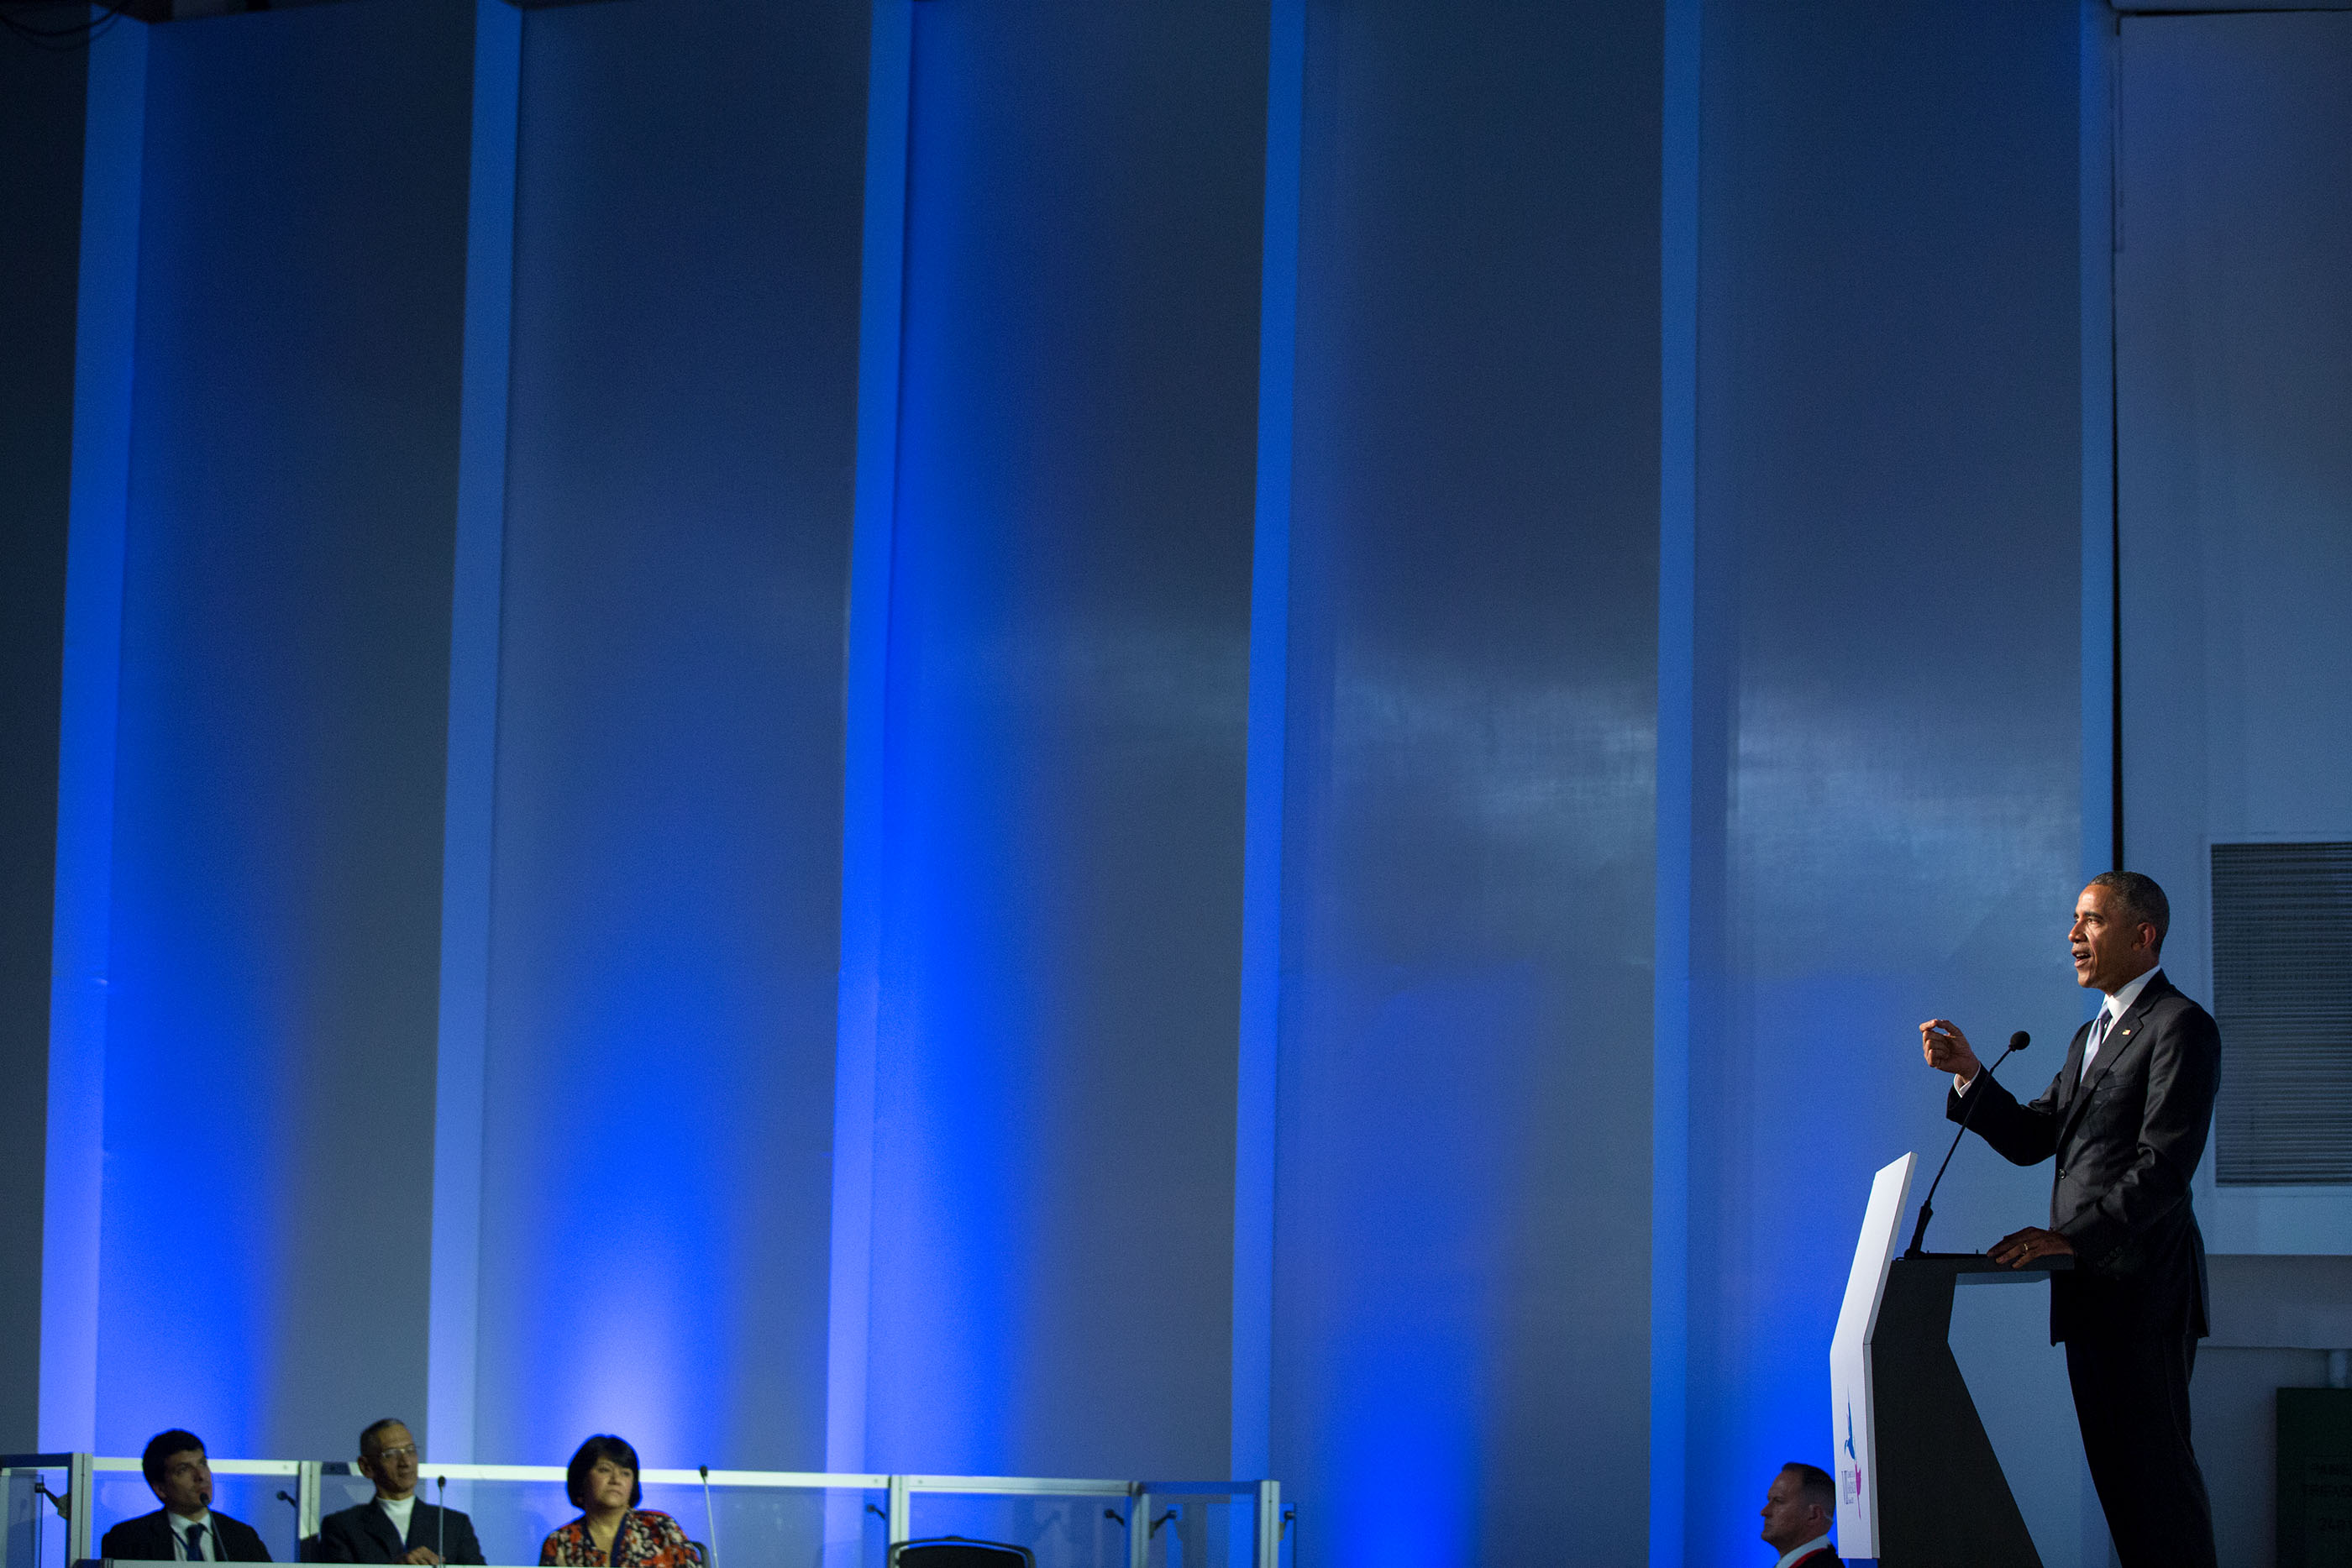 President Obama delivers remarks at a Civil Society Forum. (Official White House Photo by Pete Souza)